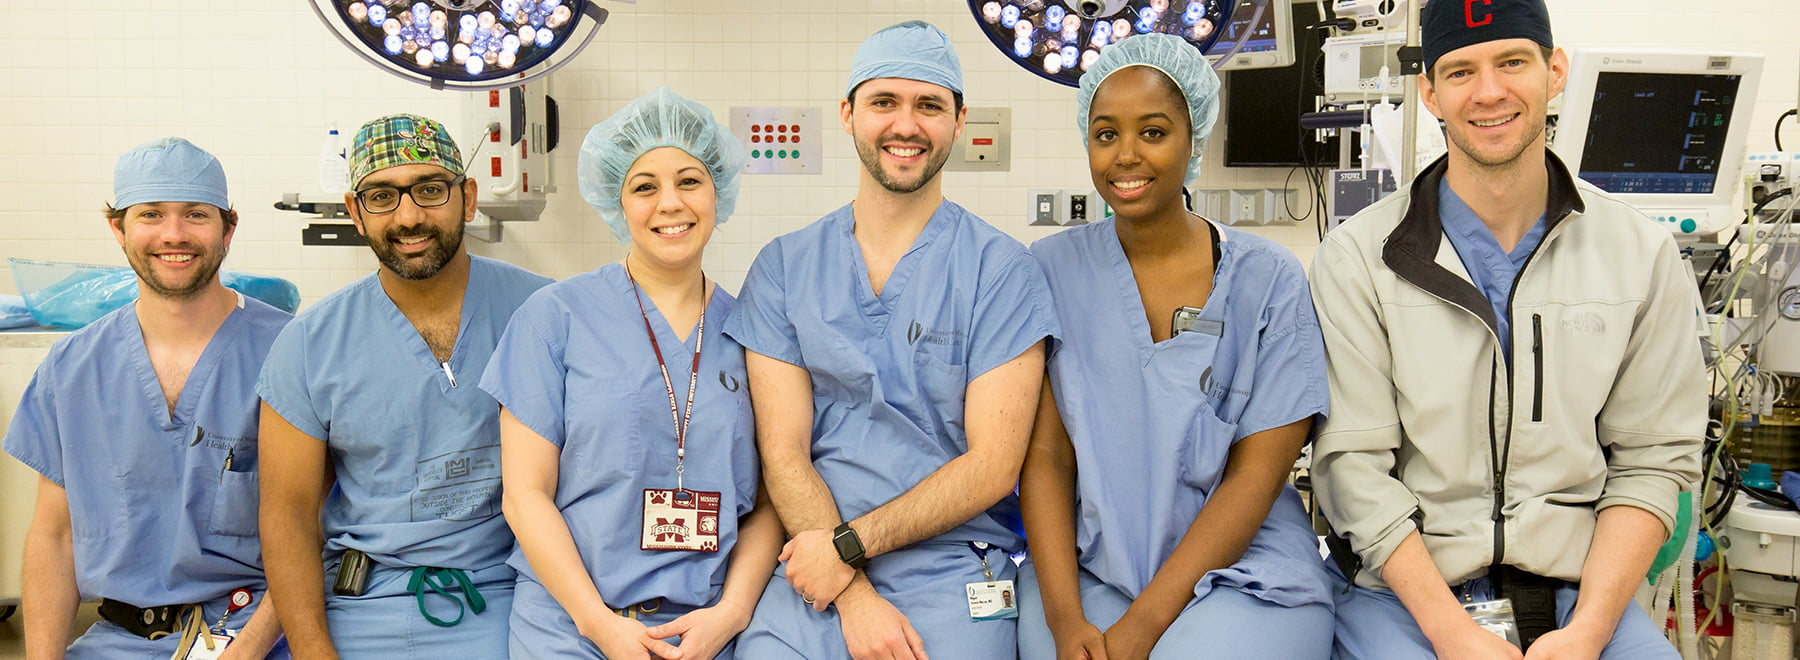 Surgery Fellows - University of Mississippi Medical Center